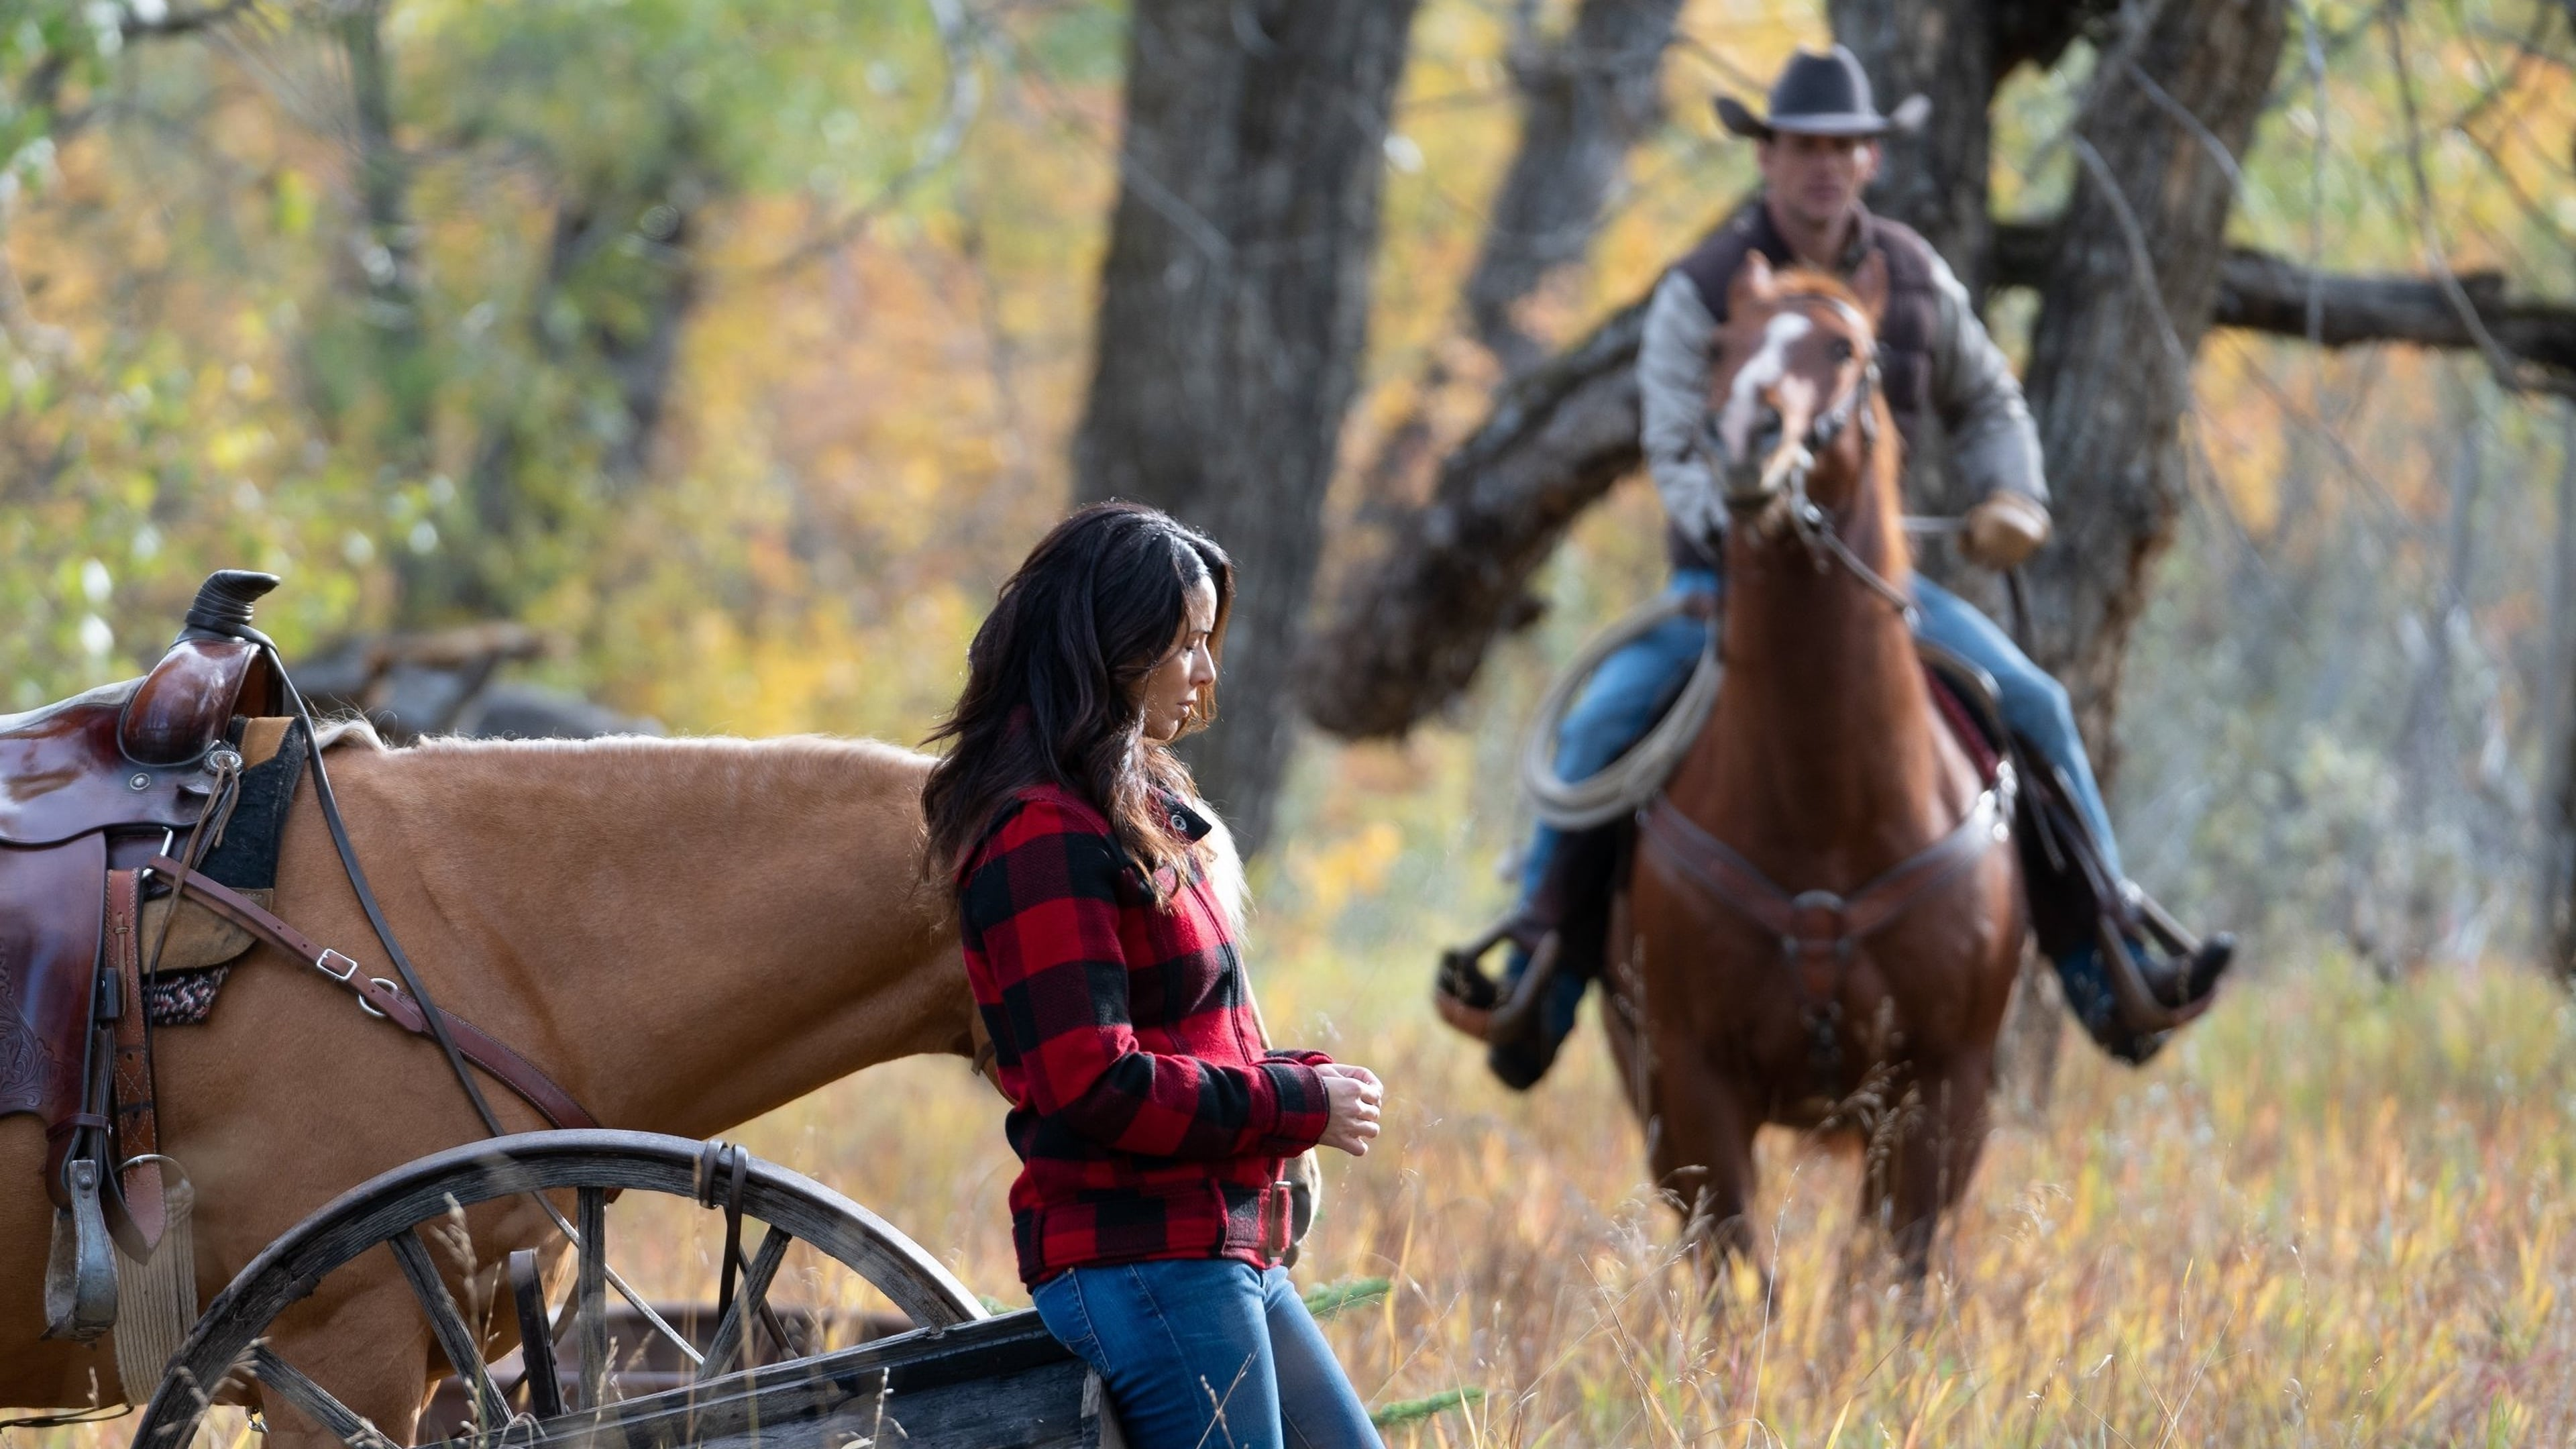 Heartland - Season 12 Episode 11 : Room to Grow